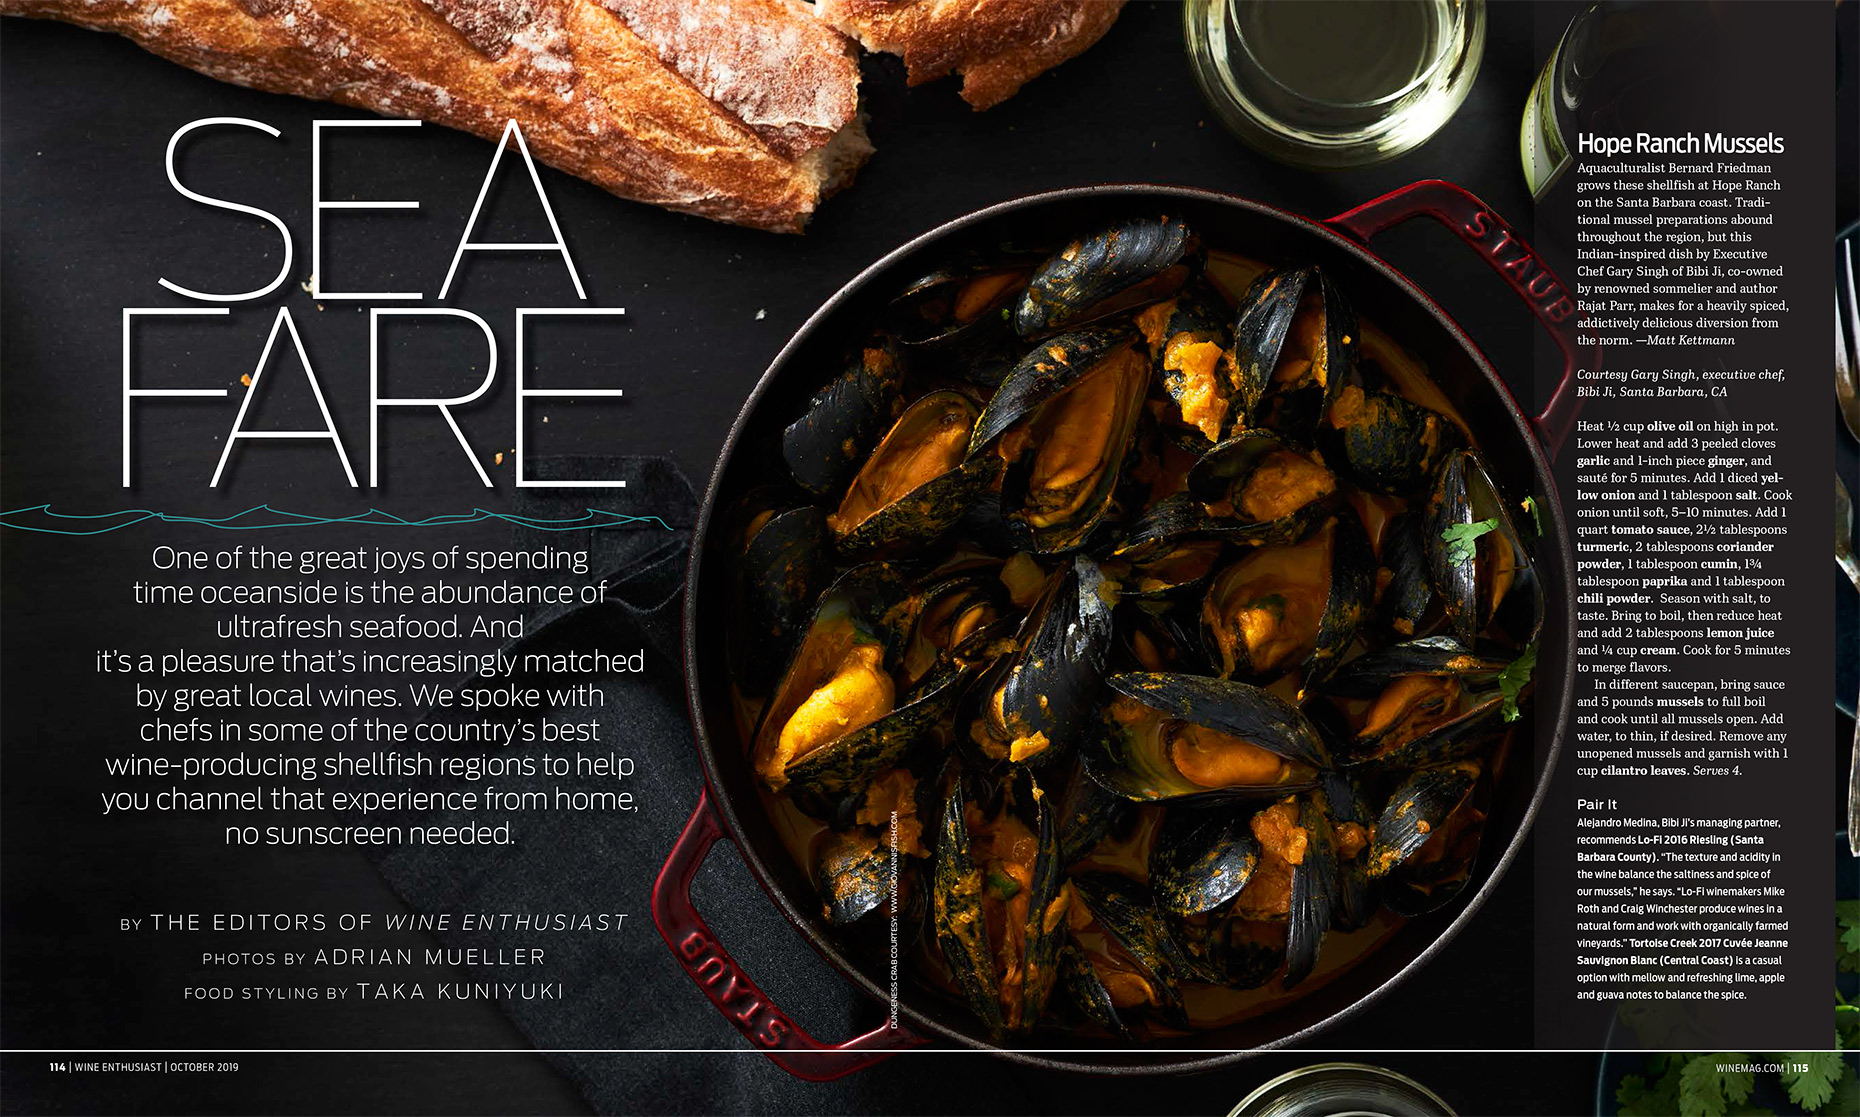 Wine Enthusiast Sea Fare Article, Food Styling by Takako Kuniyuki New York